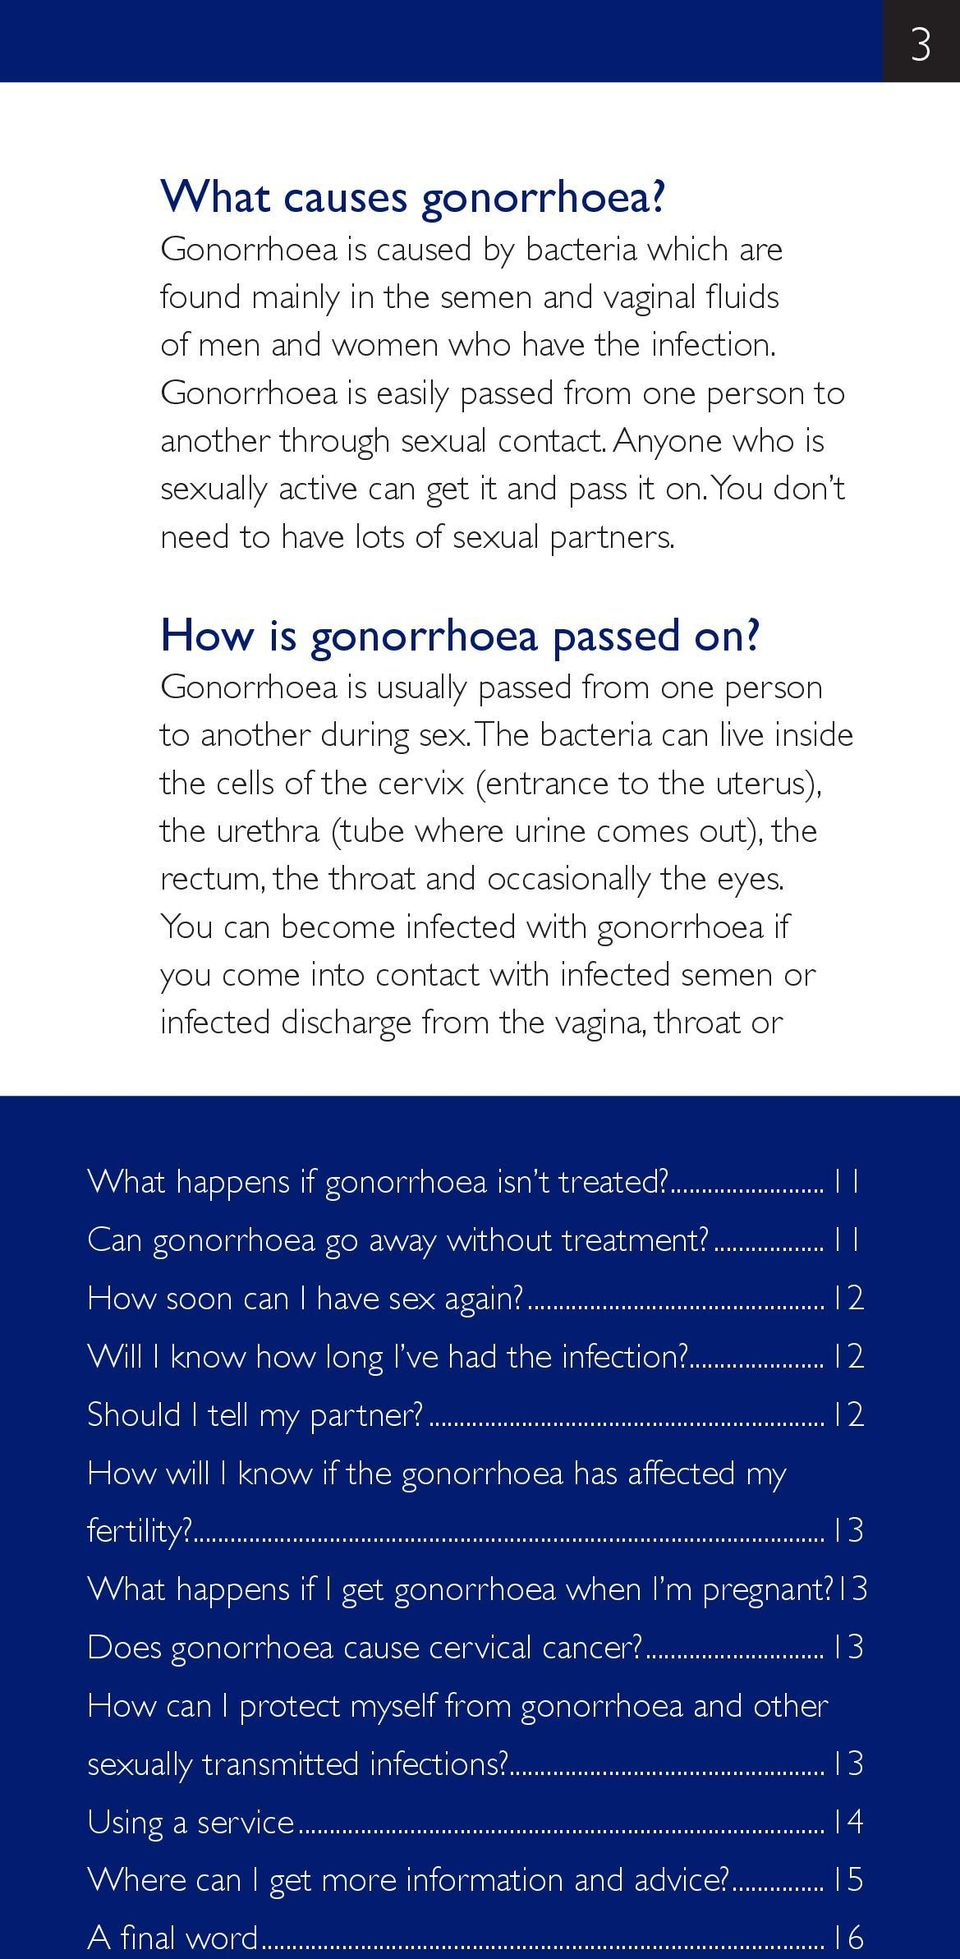 How is gonorrhoea passed on? Gonorrhoea is usually passed from one person to another during sex.